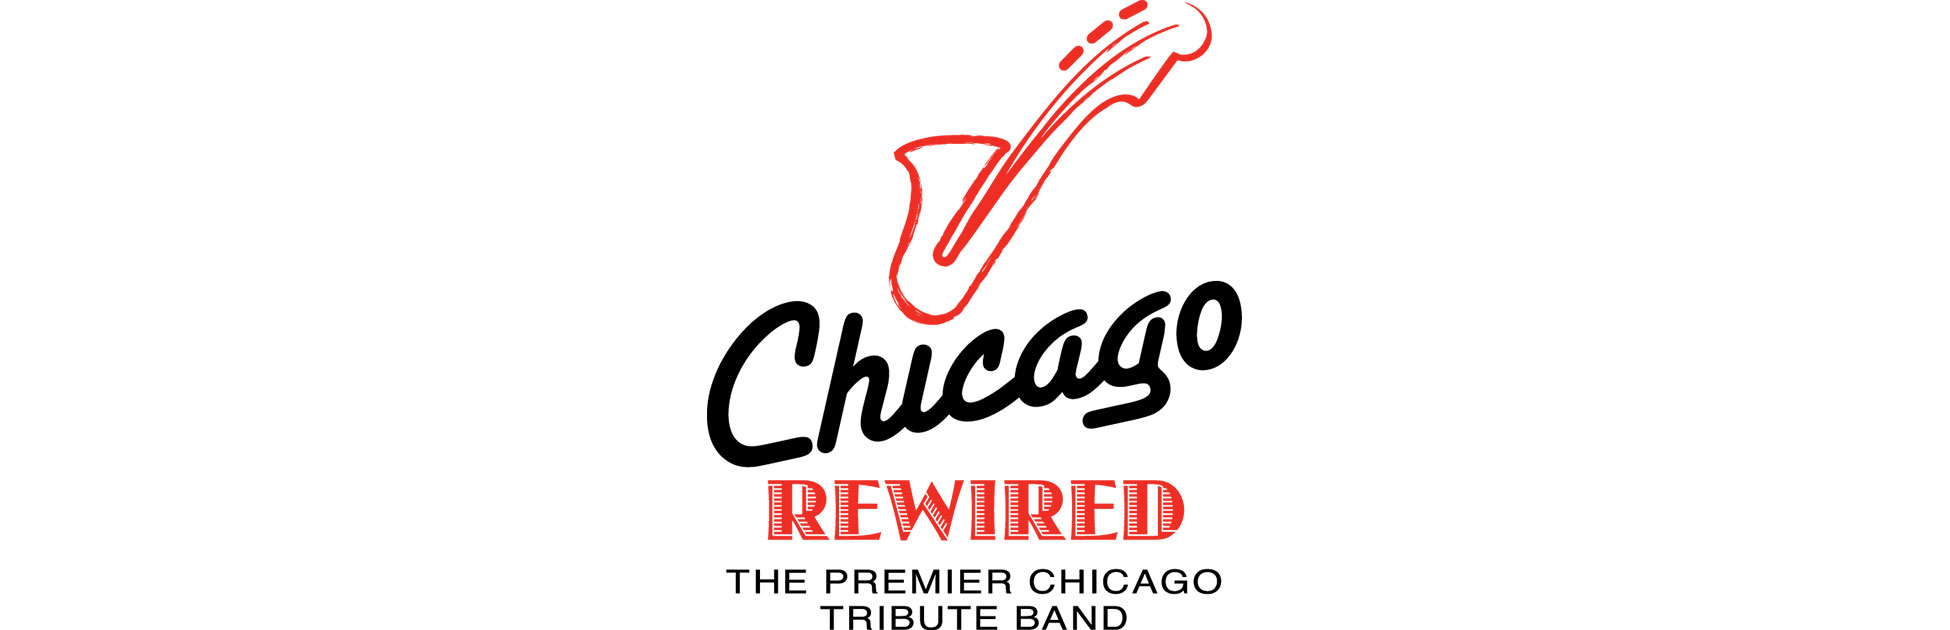 ECE - CHICAGO REWIRED- THE PREMIERE CHICAGO TRIBUTE BAND